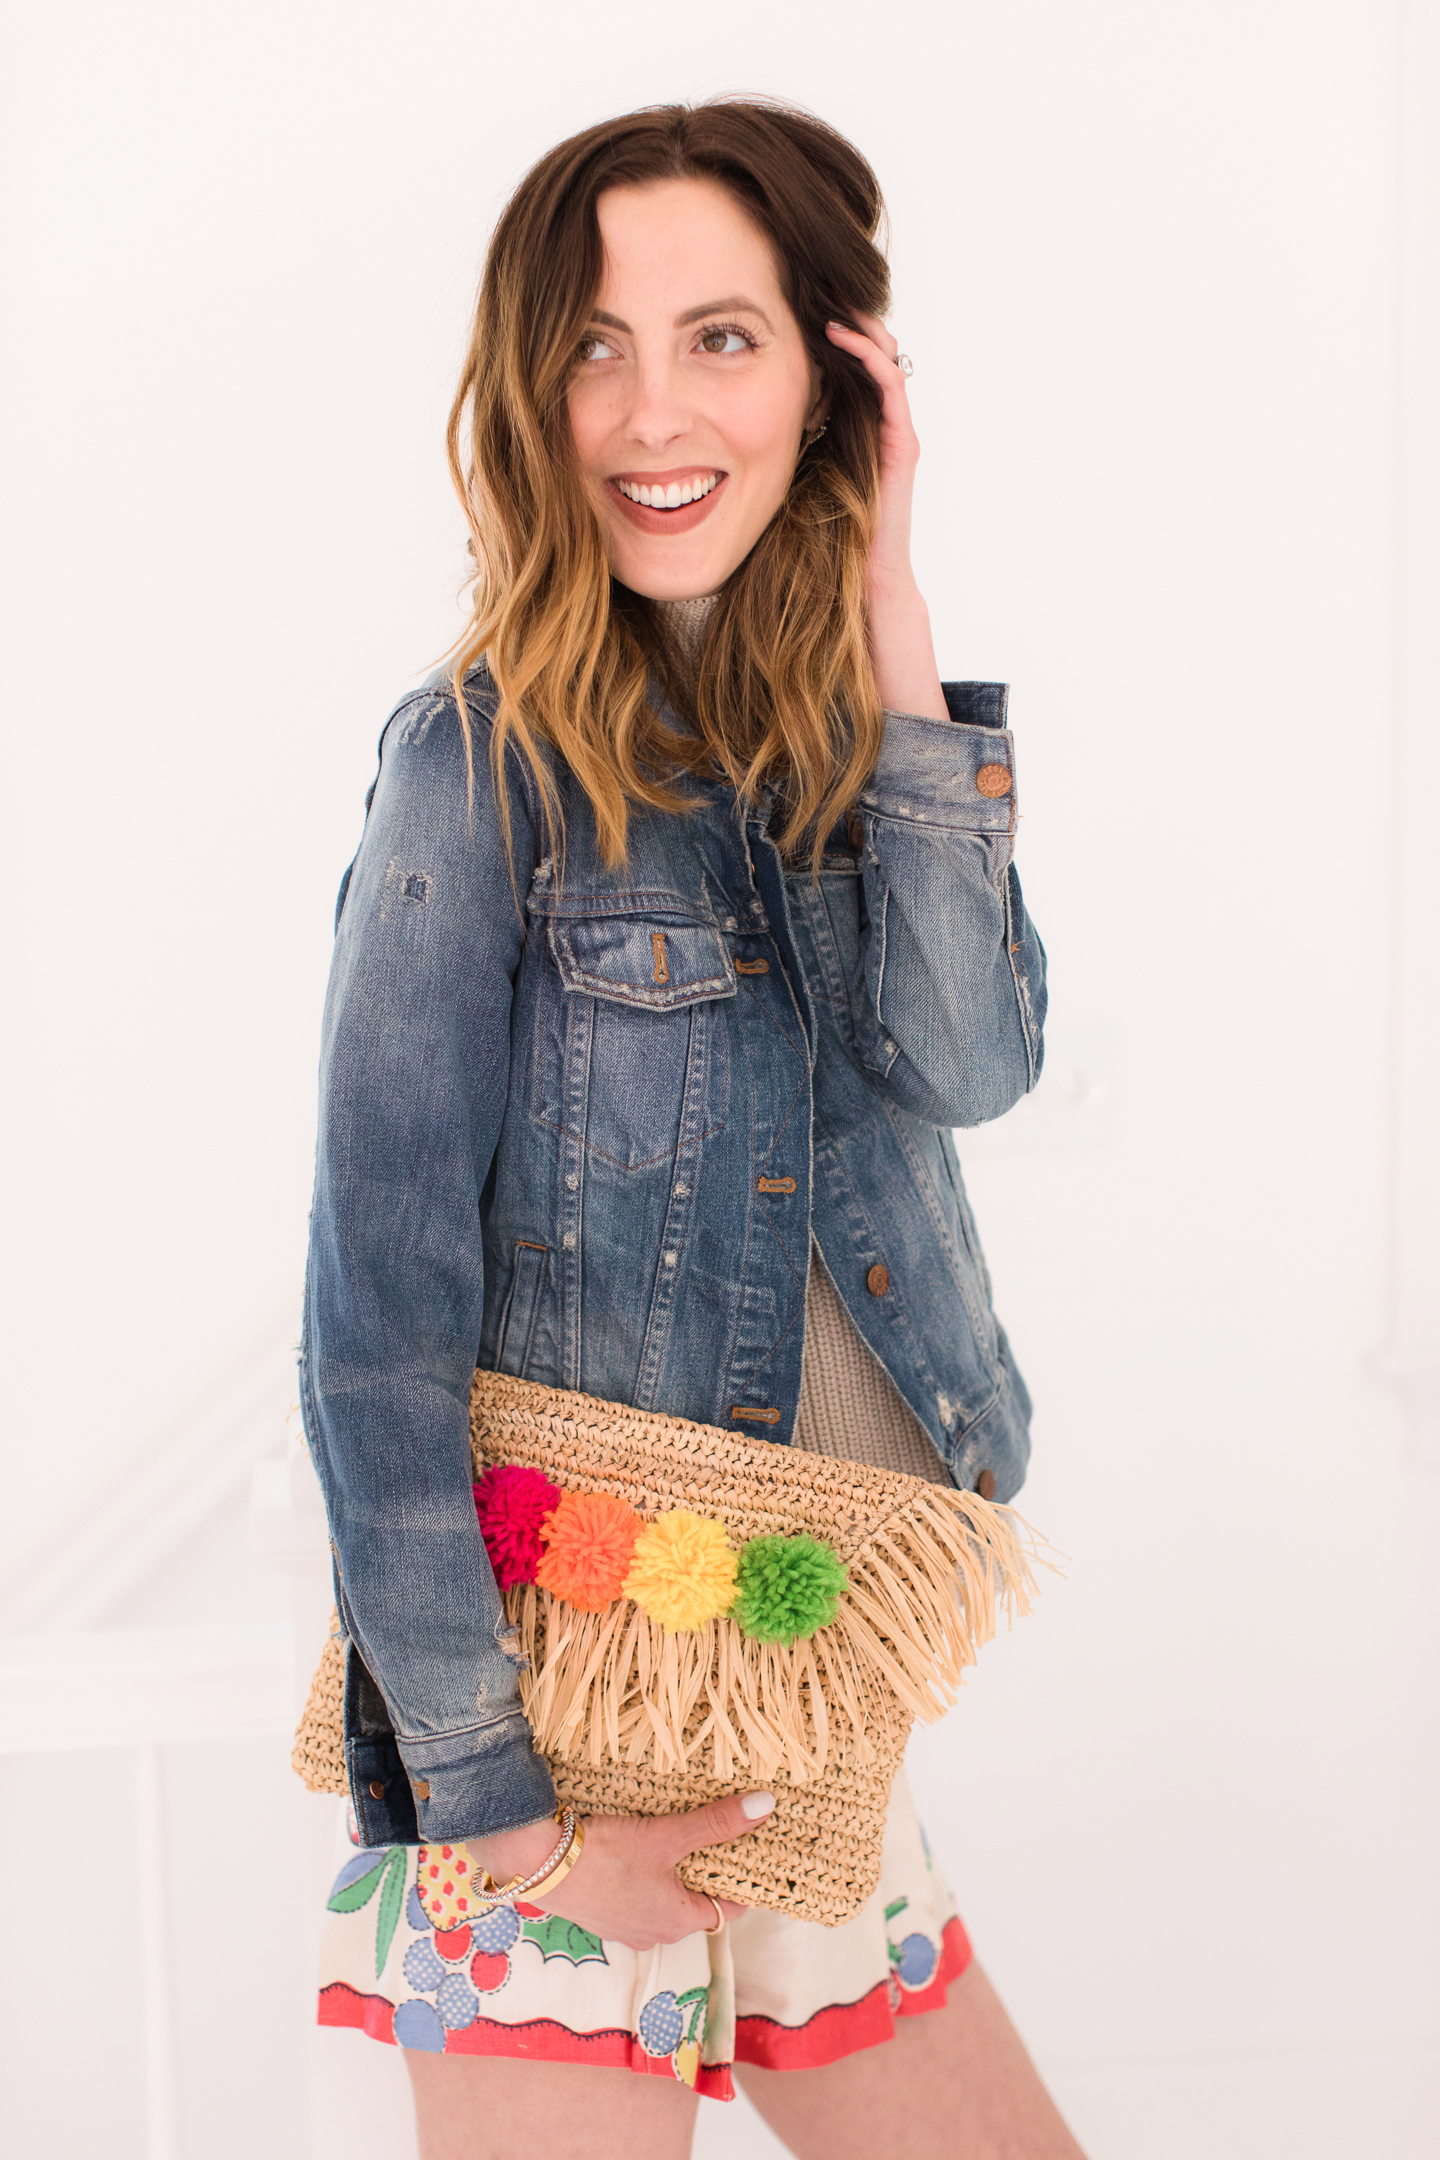 Eva Amurri Martino carries her multicolored DIY pom pom clutch with her colorful summer outfit